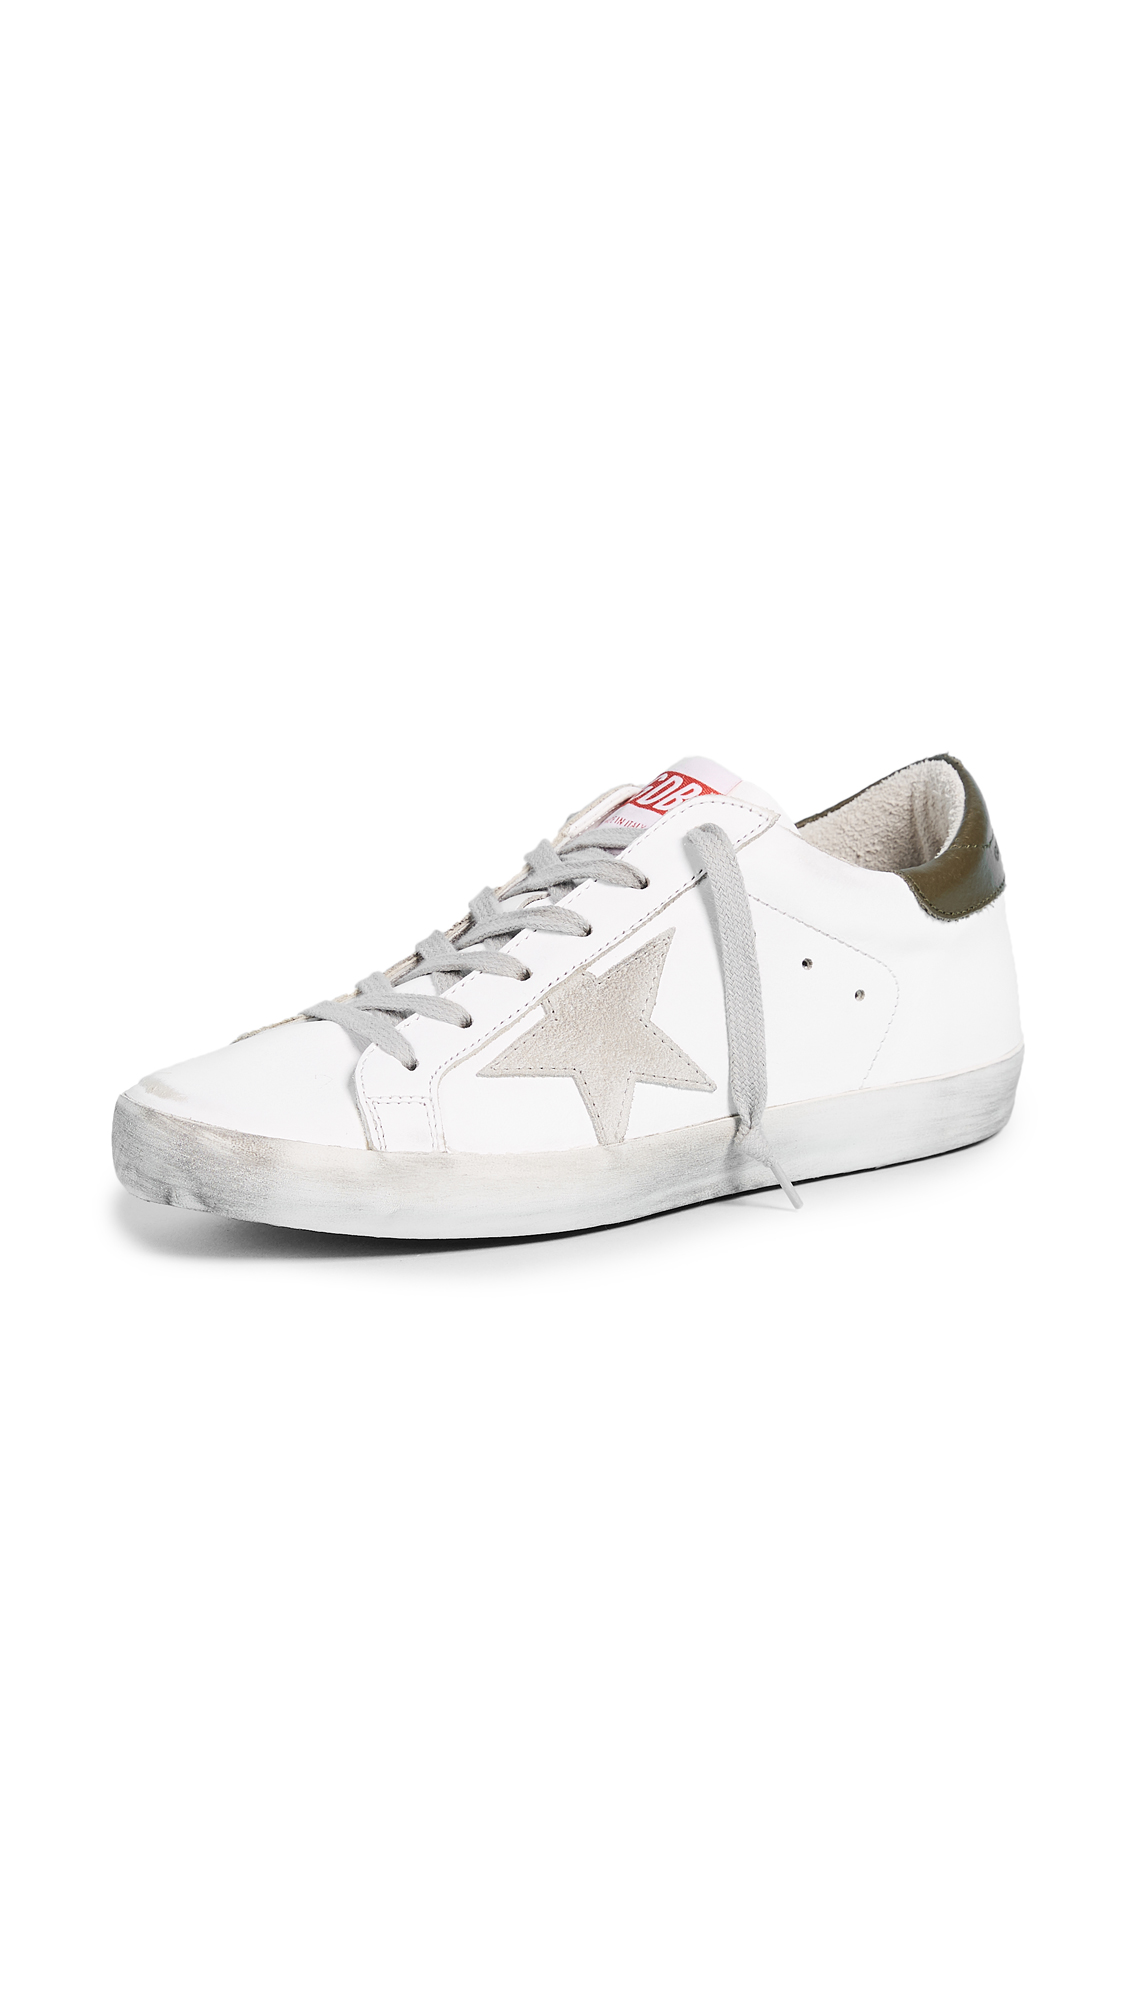 Golden Goose Superstar Sneakers - White/Military Green